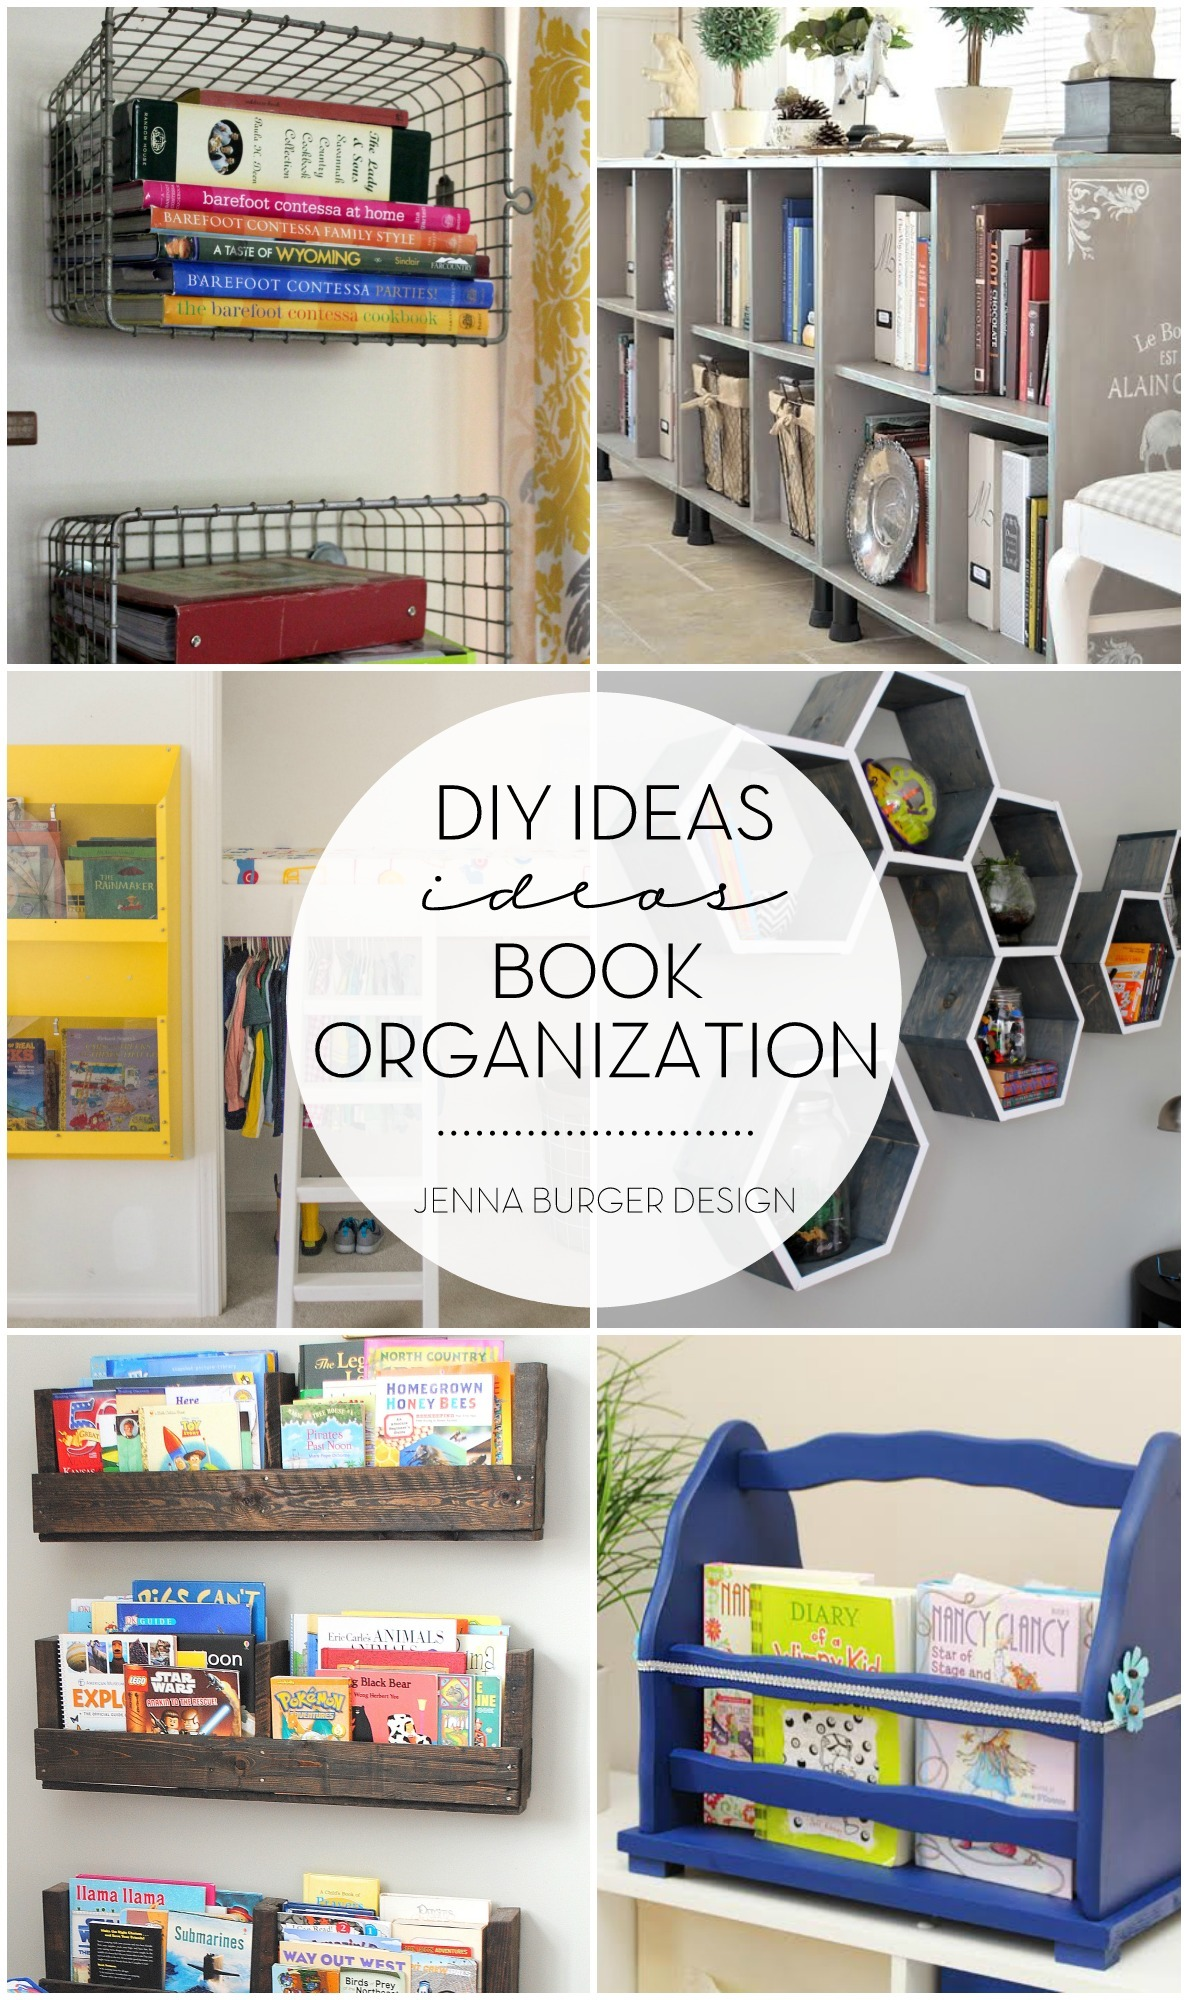 Diy ideas for book organization jenna burger 5 diy ideas for book organization ditch the idea that books are only for the solutioingenieria Image collections